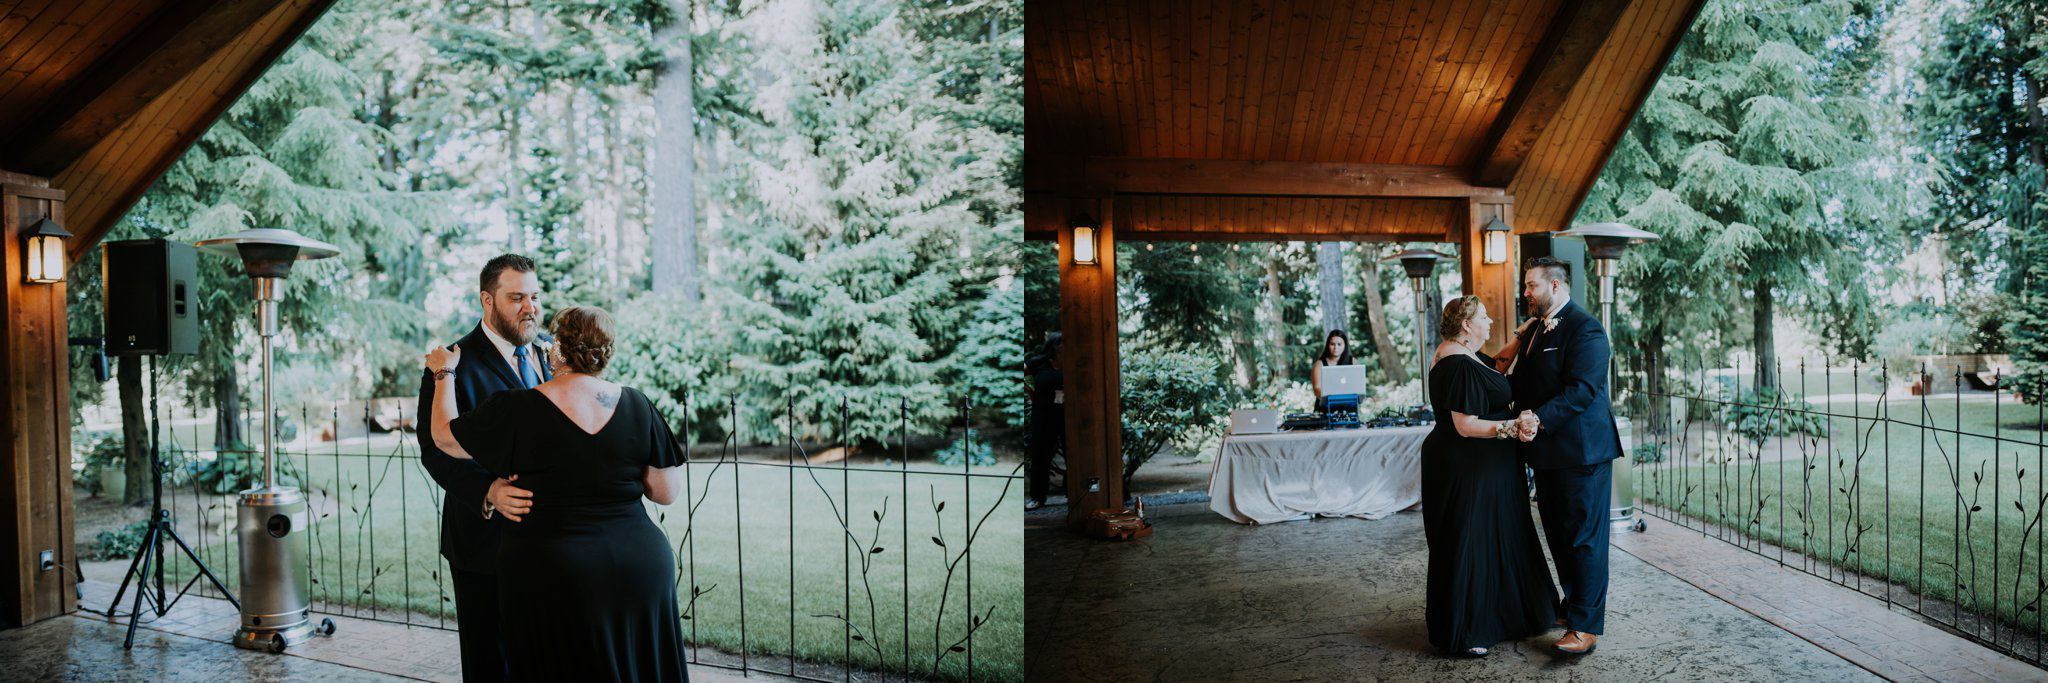 evergreen-gardens-bellingham-wedding-seattle-photographer-caitlyn-nikula-102.jpg